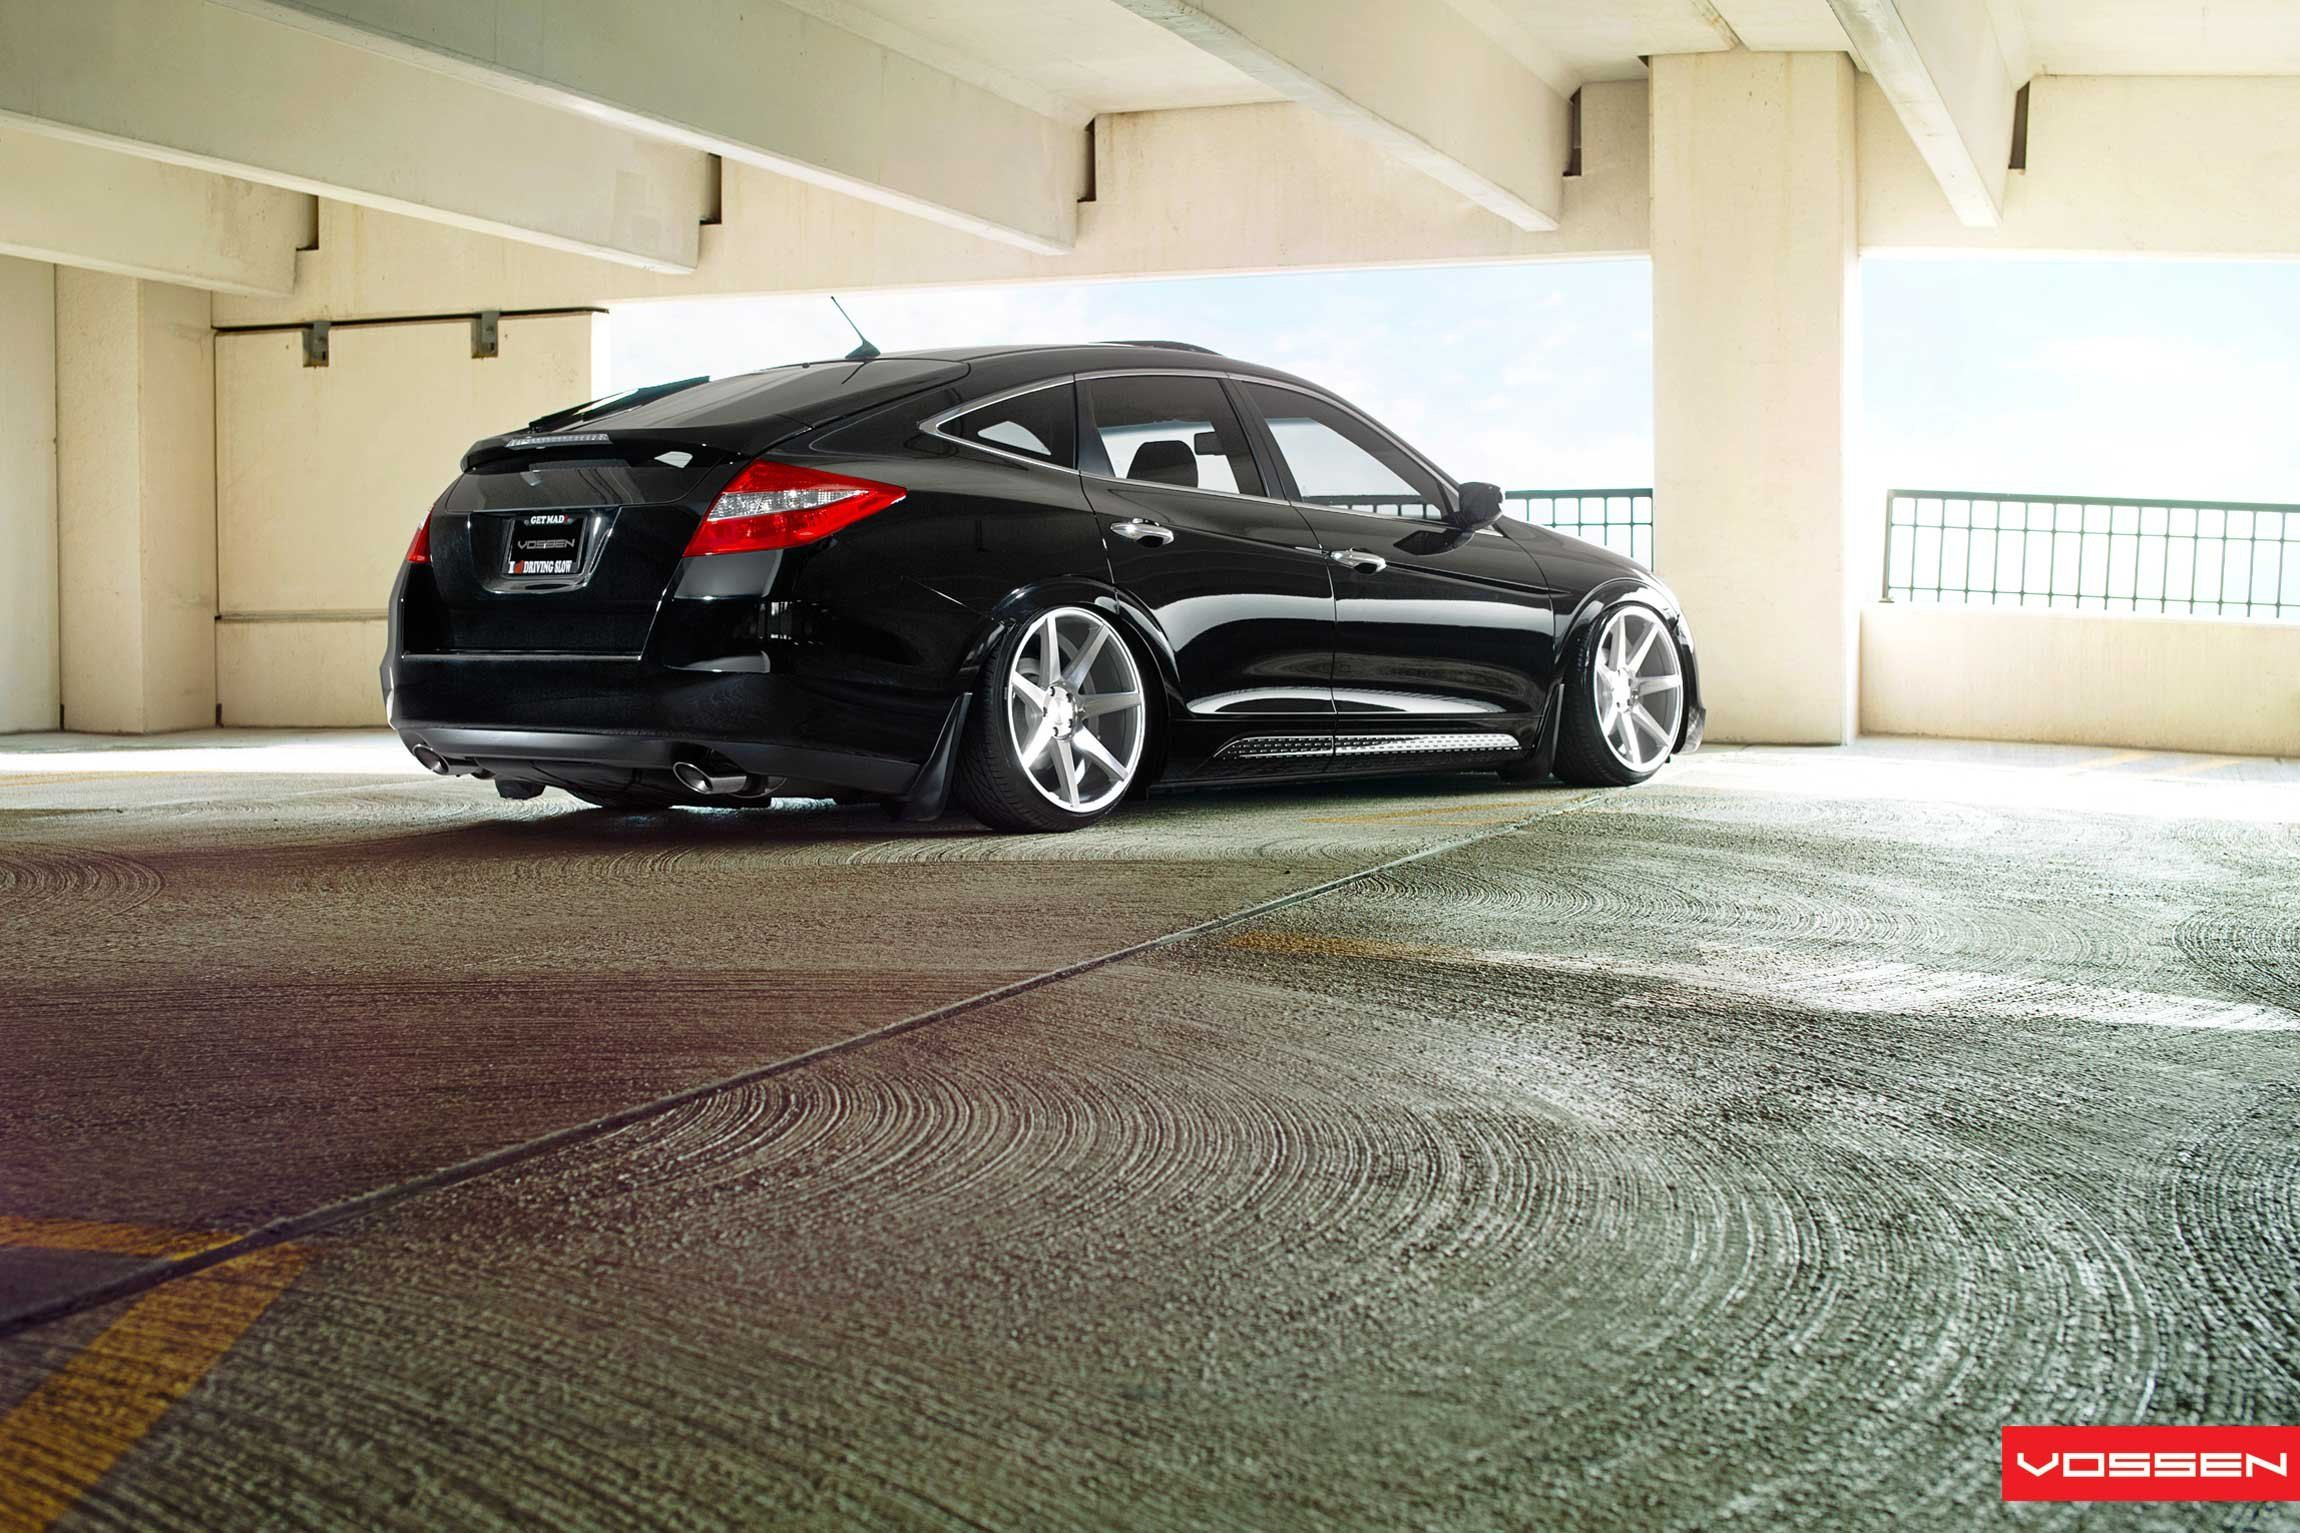 Black Honda Crosstour Spruced Up With Accessories